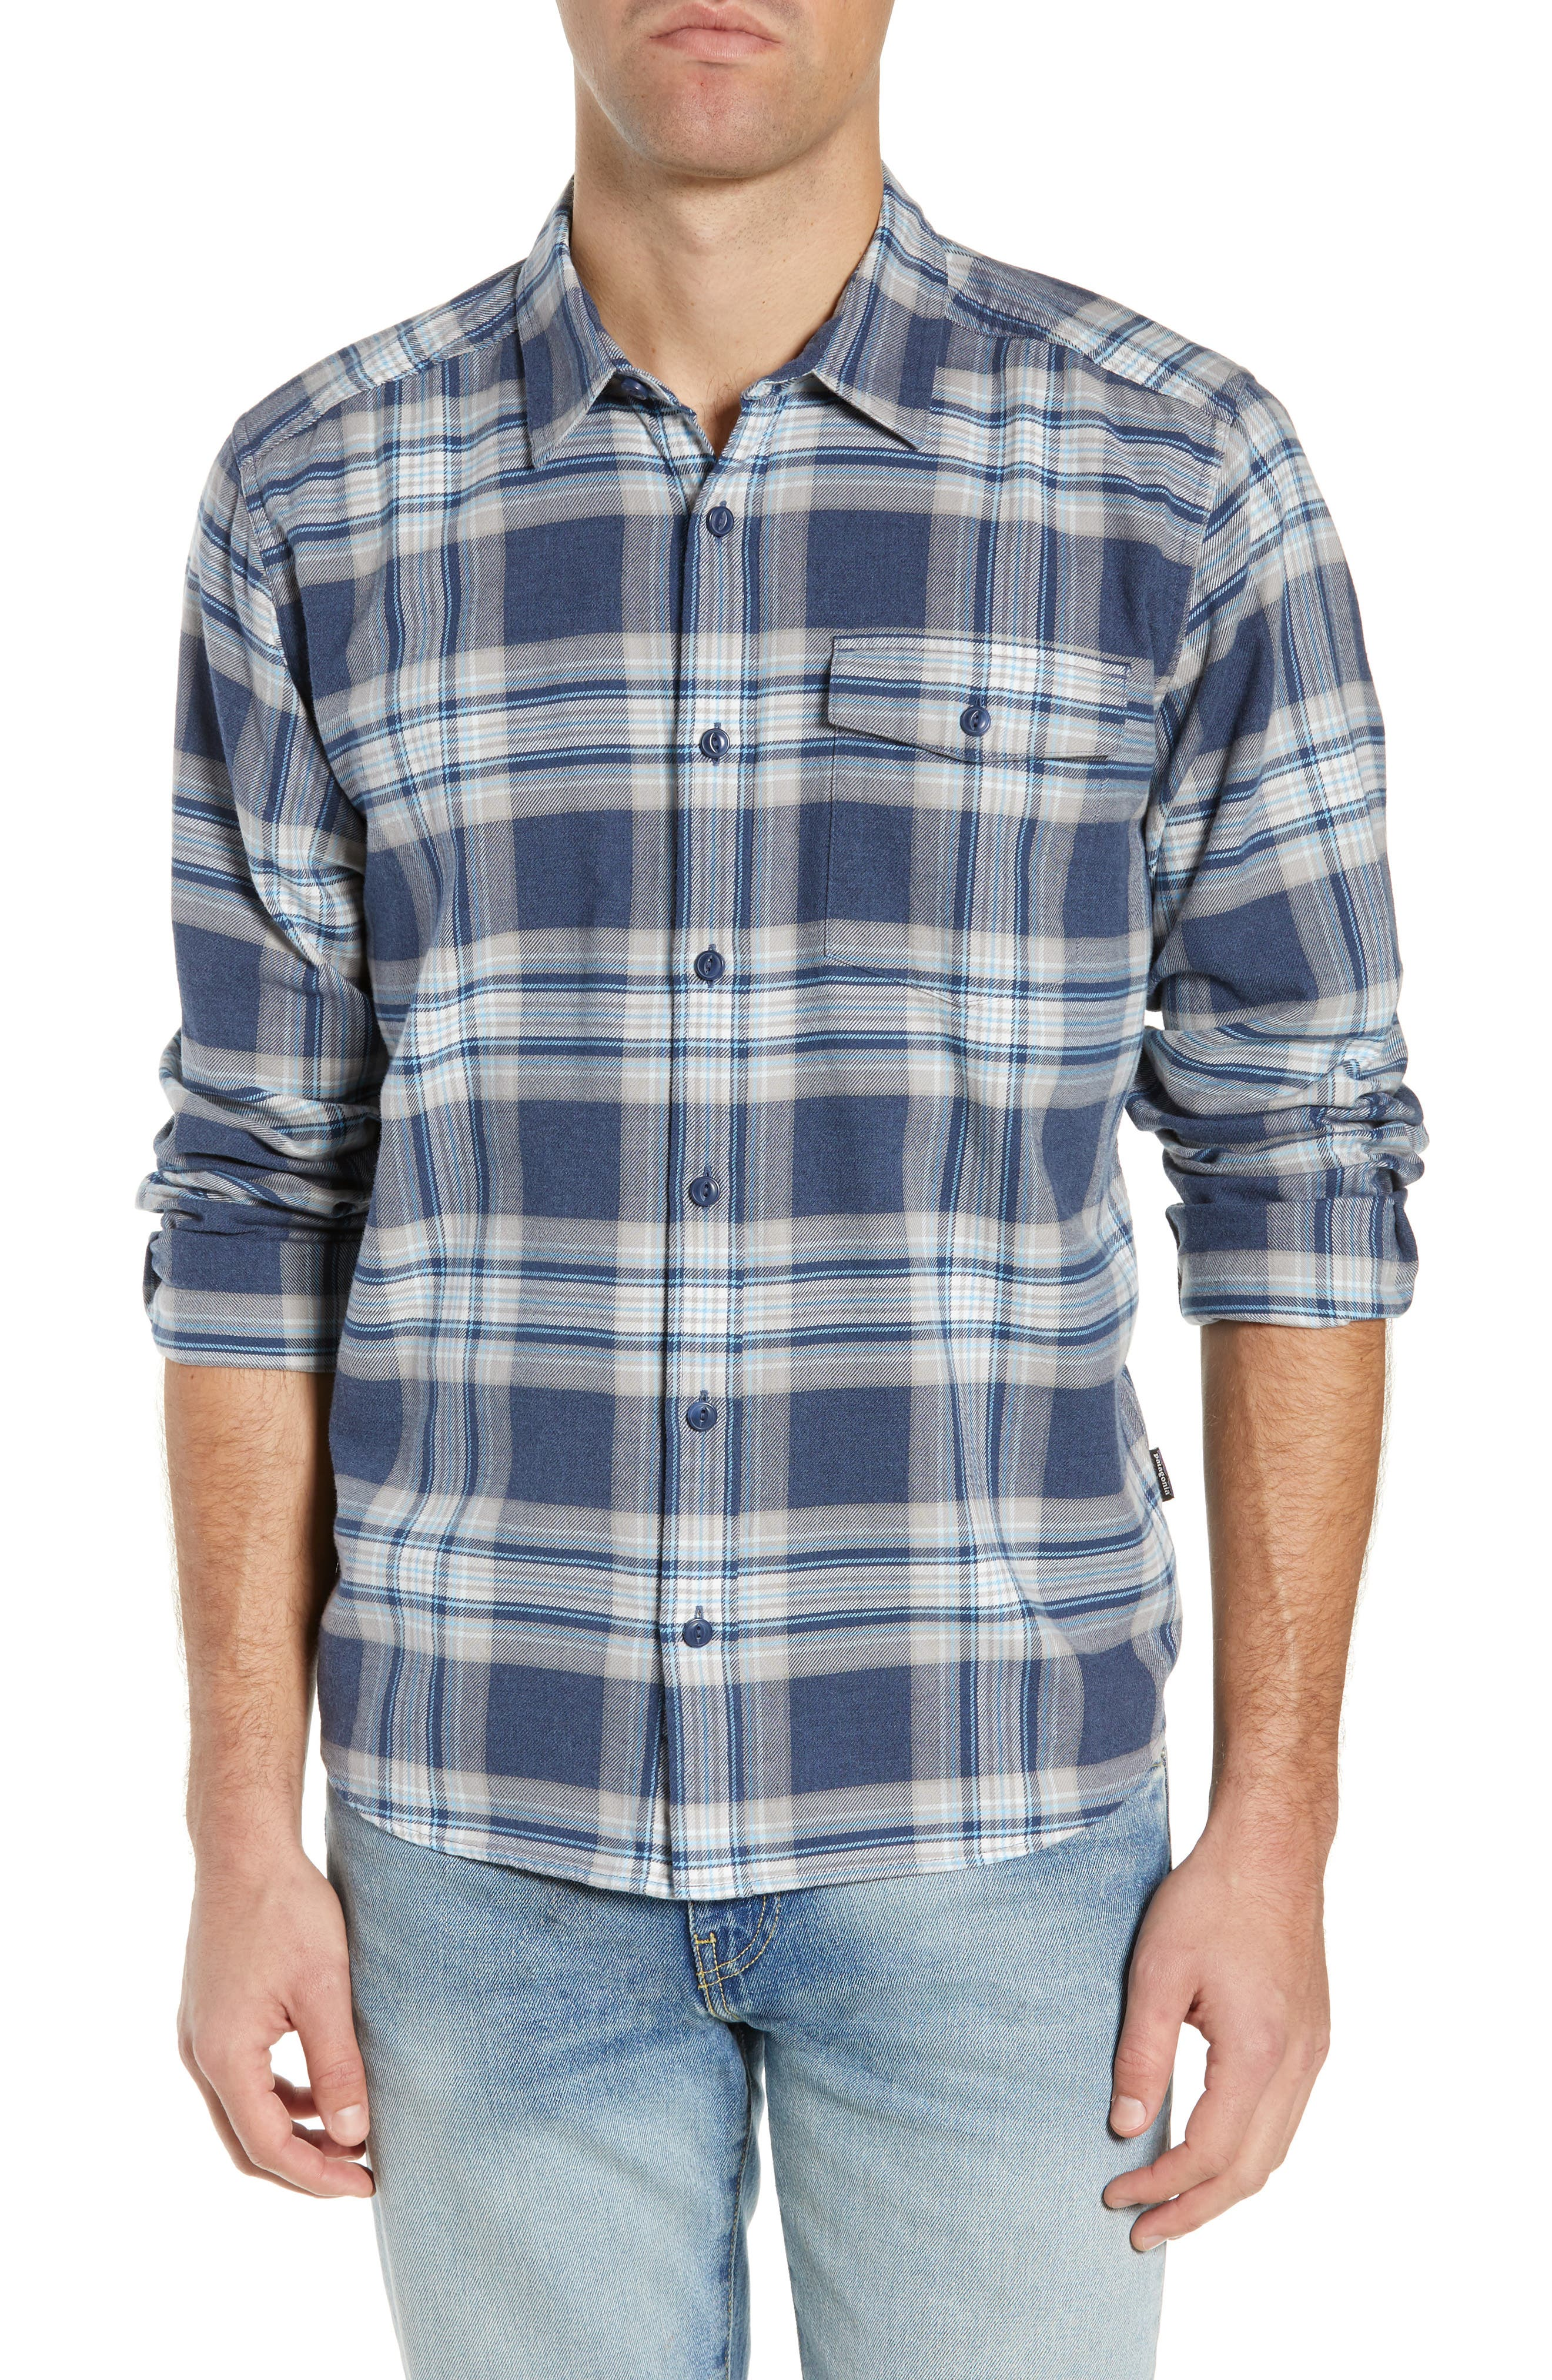 Patagonia Regular Fit Organic Cotton Flannel Shirt, Blue